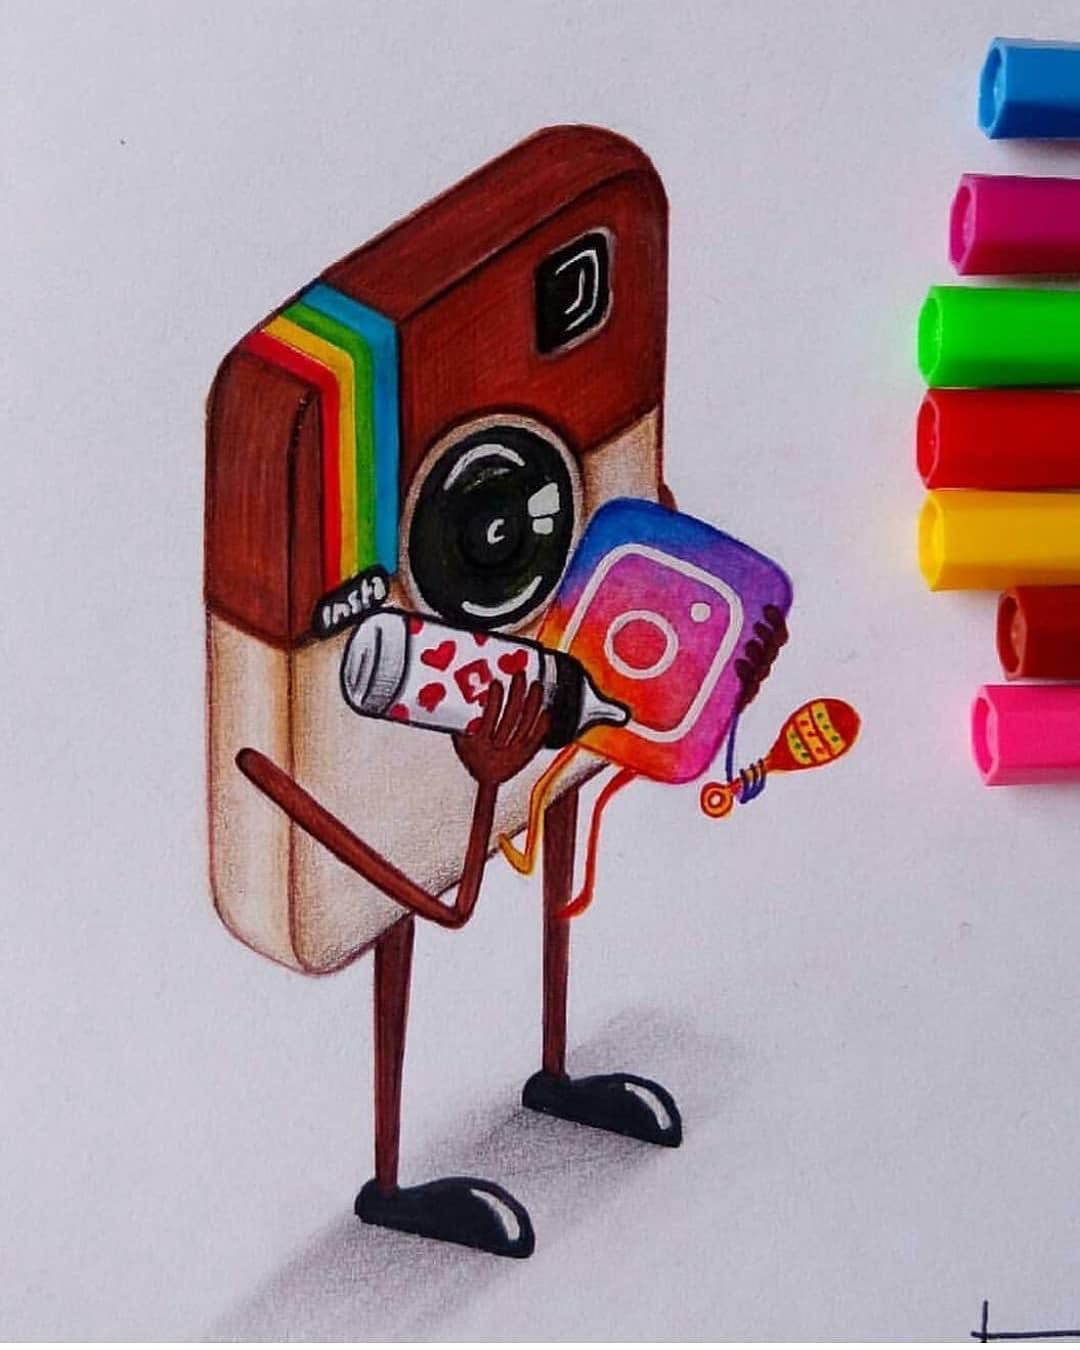 40 Cool Art Ideas Which One Is Your Favorite 1 10 Follow By Art Social Media Drawings Social Media Art Creative Drawing